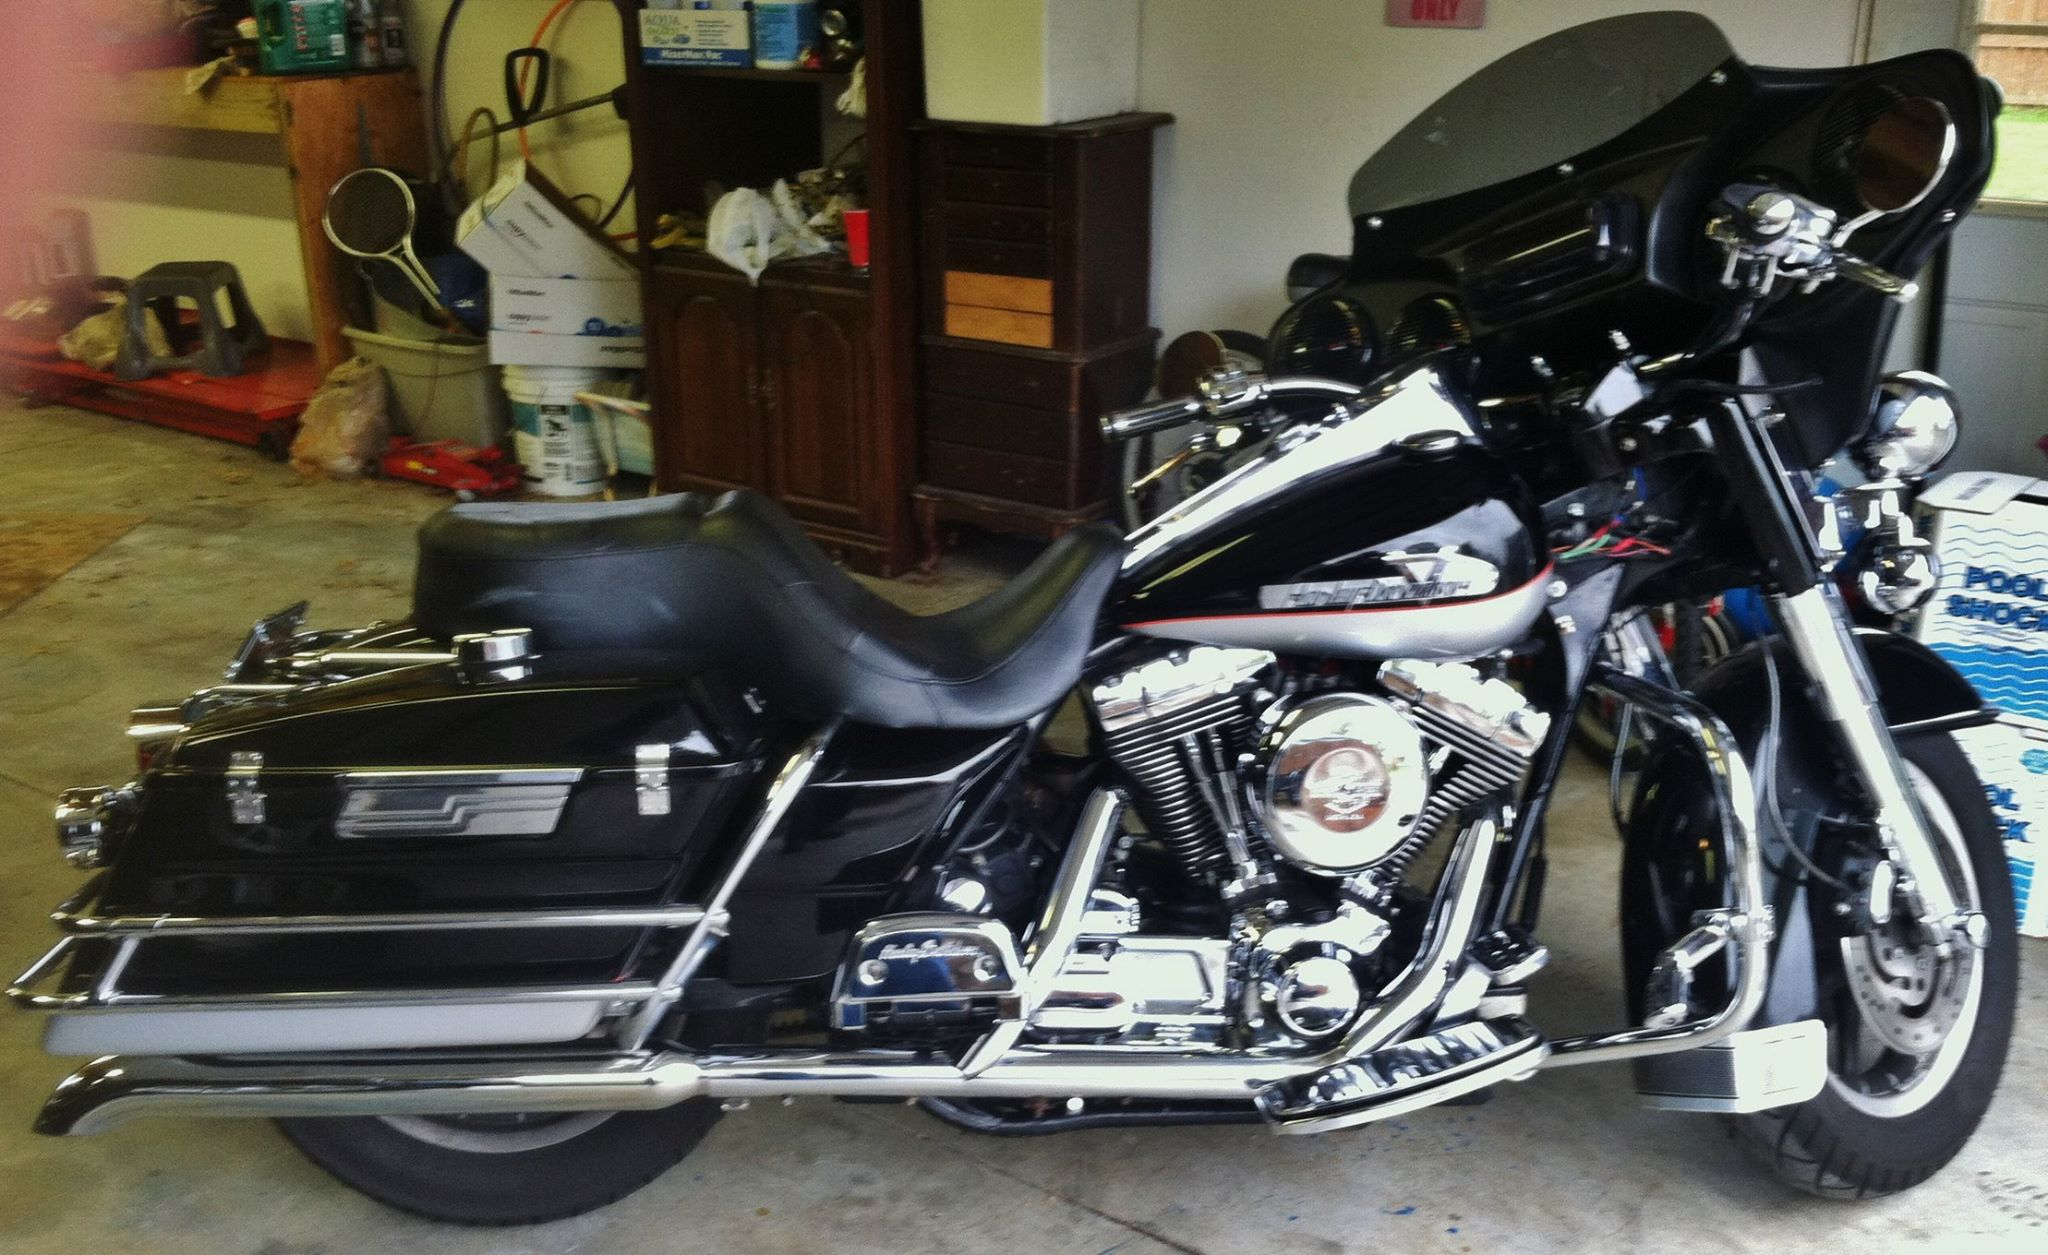 custom road king wiring harness custom batwing fairing s complete with stereo system or shell only  custom batwing fairing s complete with